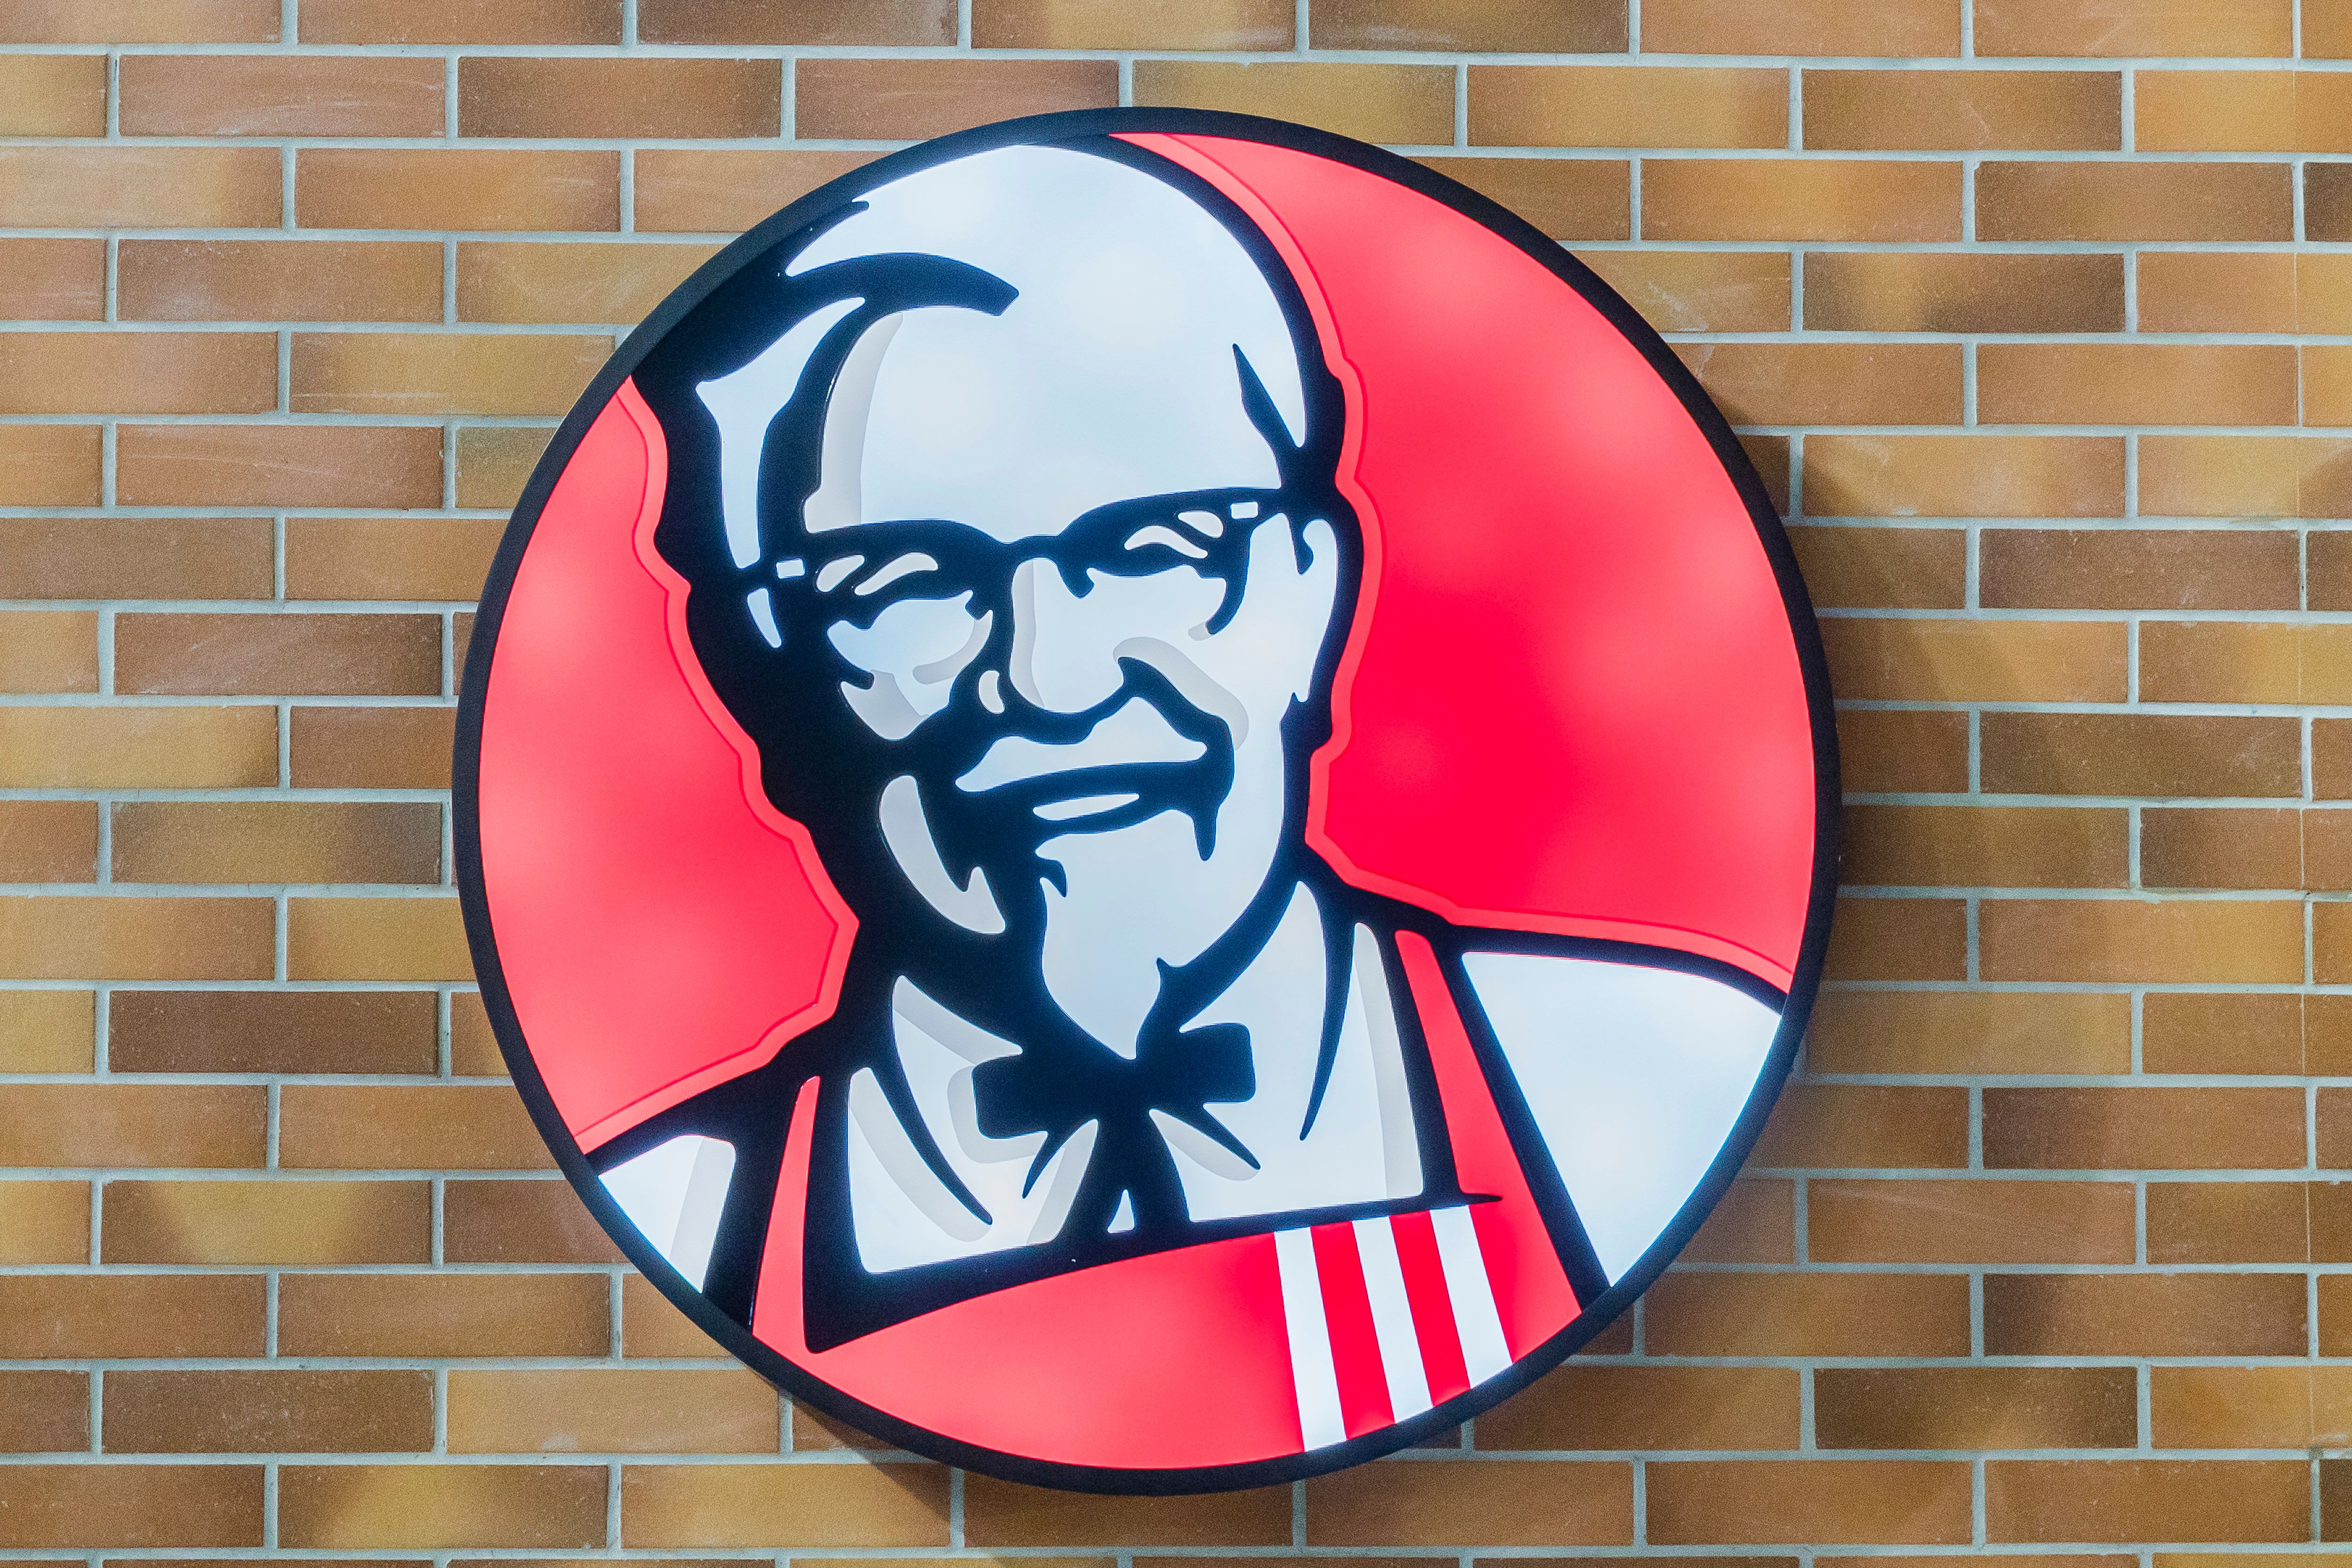 SHANGHAI, CHINA - AUGUST 10: Signage of KFC's is seen at Shanghai Pudong International Airport on August 10 2018 in Shanghai, China. (Photo by Yu Chun Christopher Wong/S3studio/Getty Images)